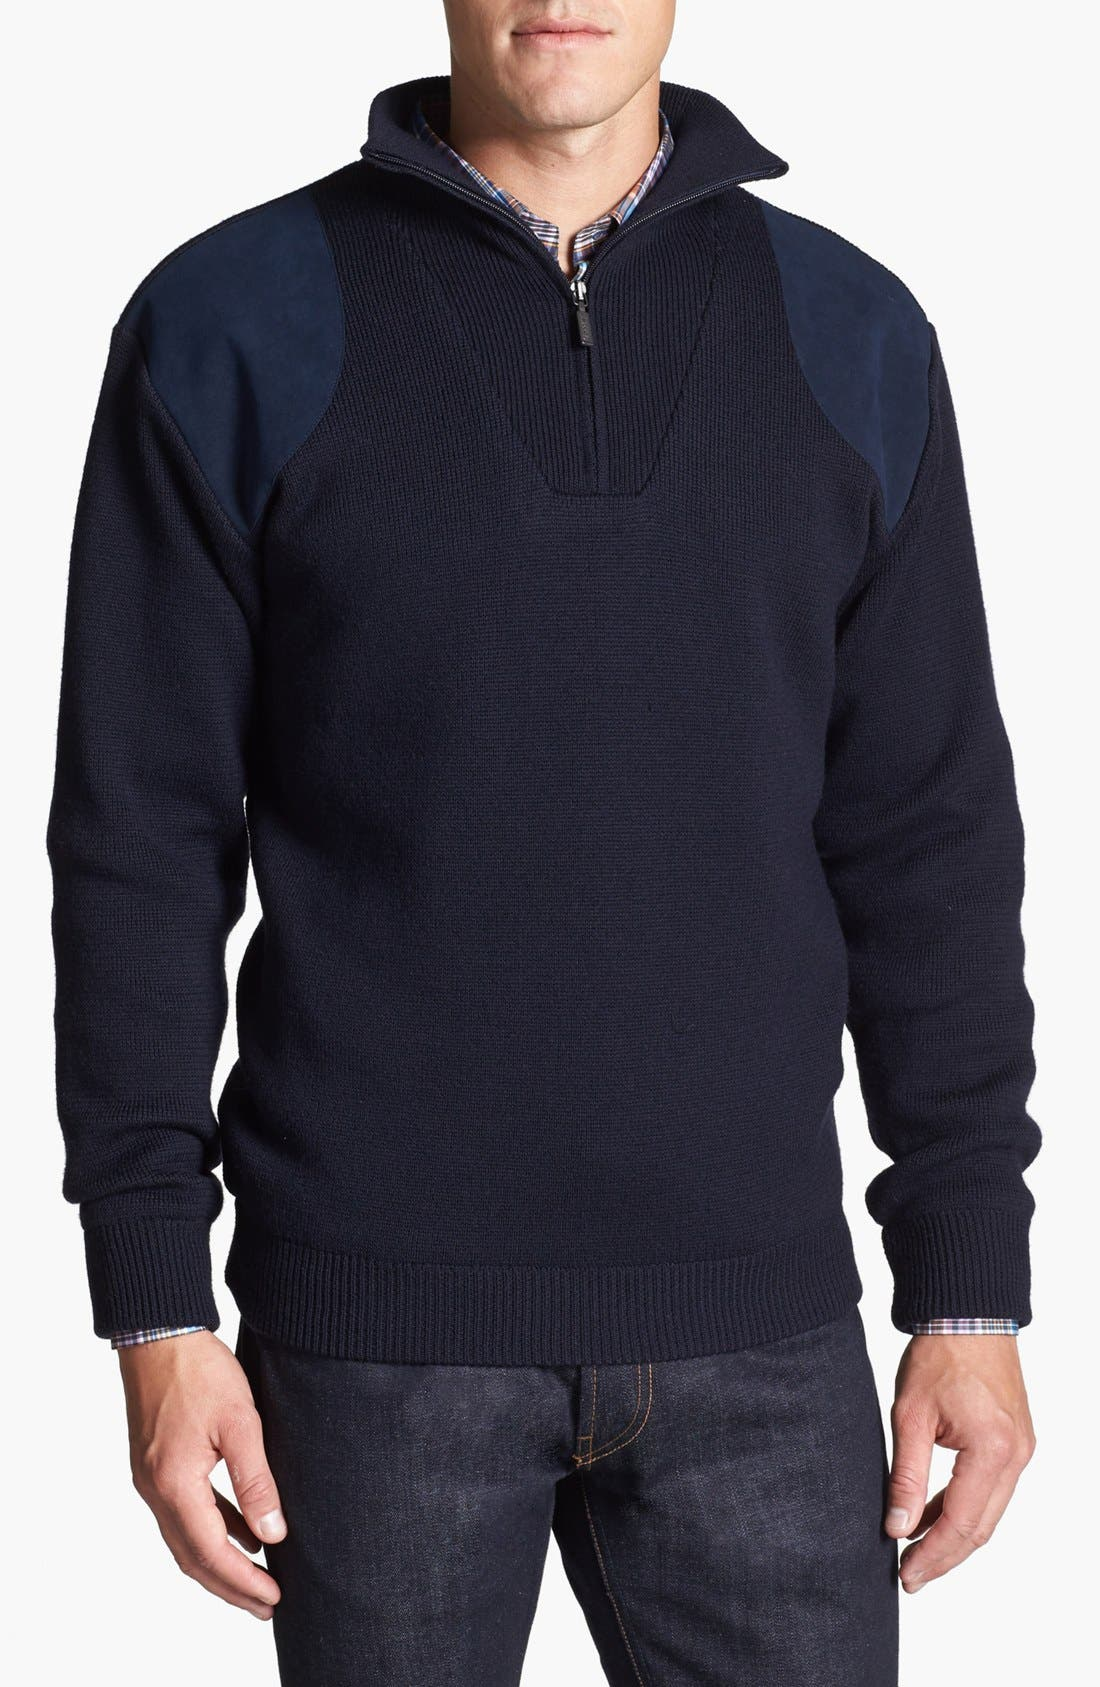 Alternate Image 1 Selected - Barbour 'Storm' Relaxed Fit Half-Zip Merino Wool Sweater